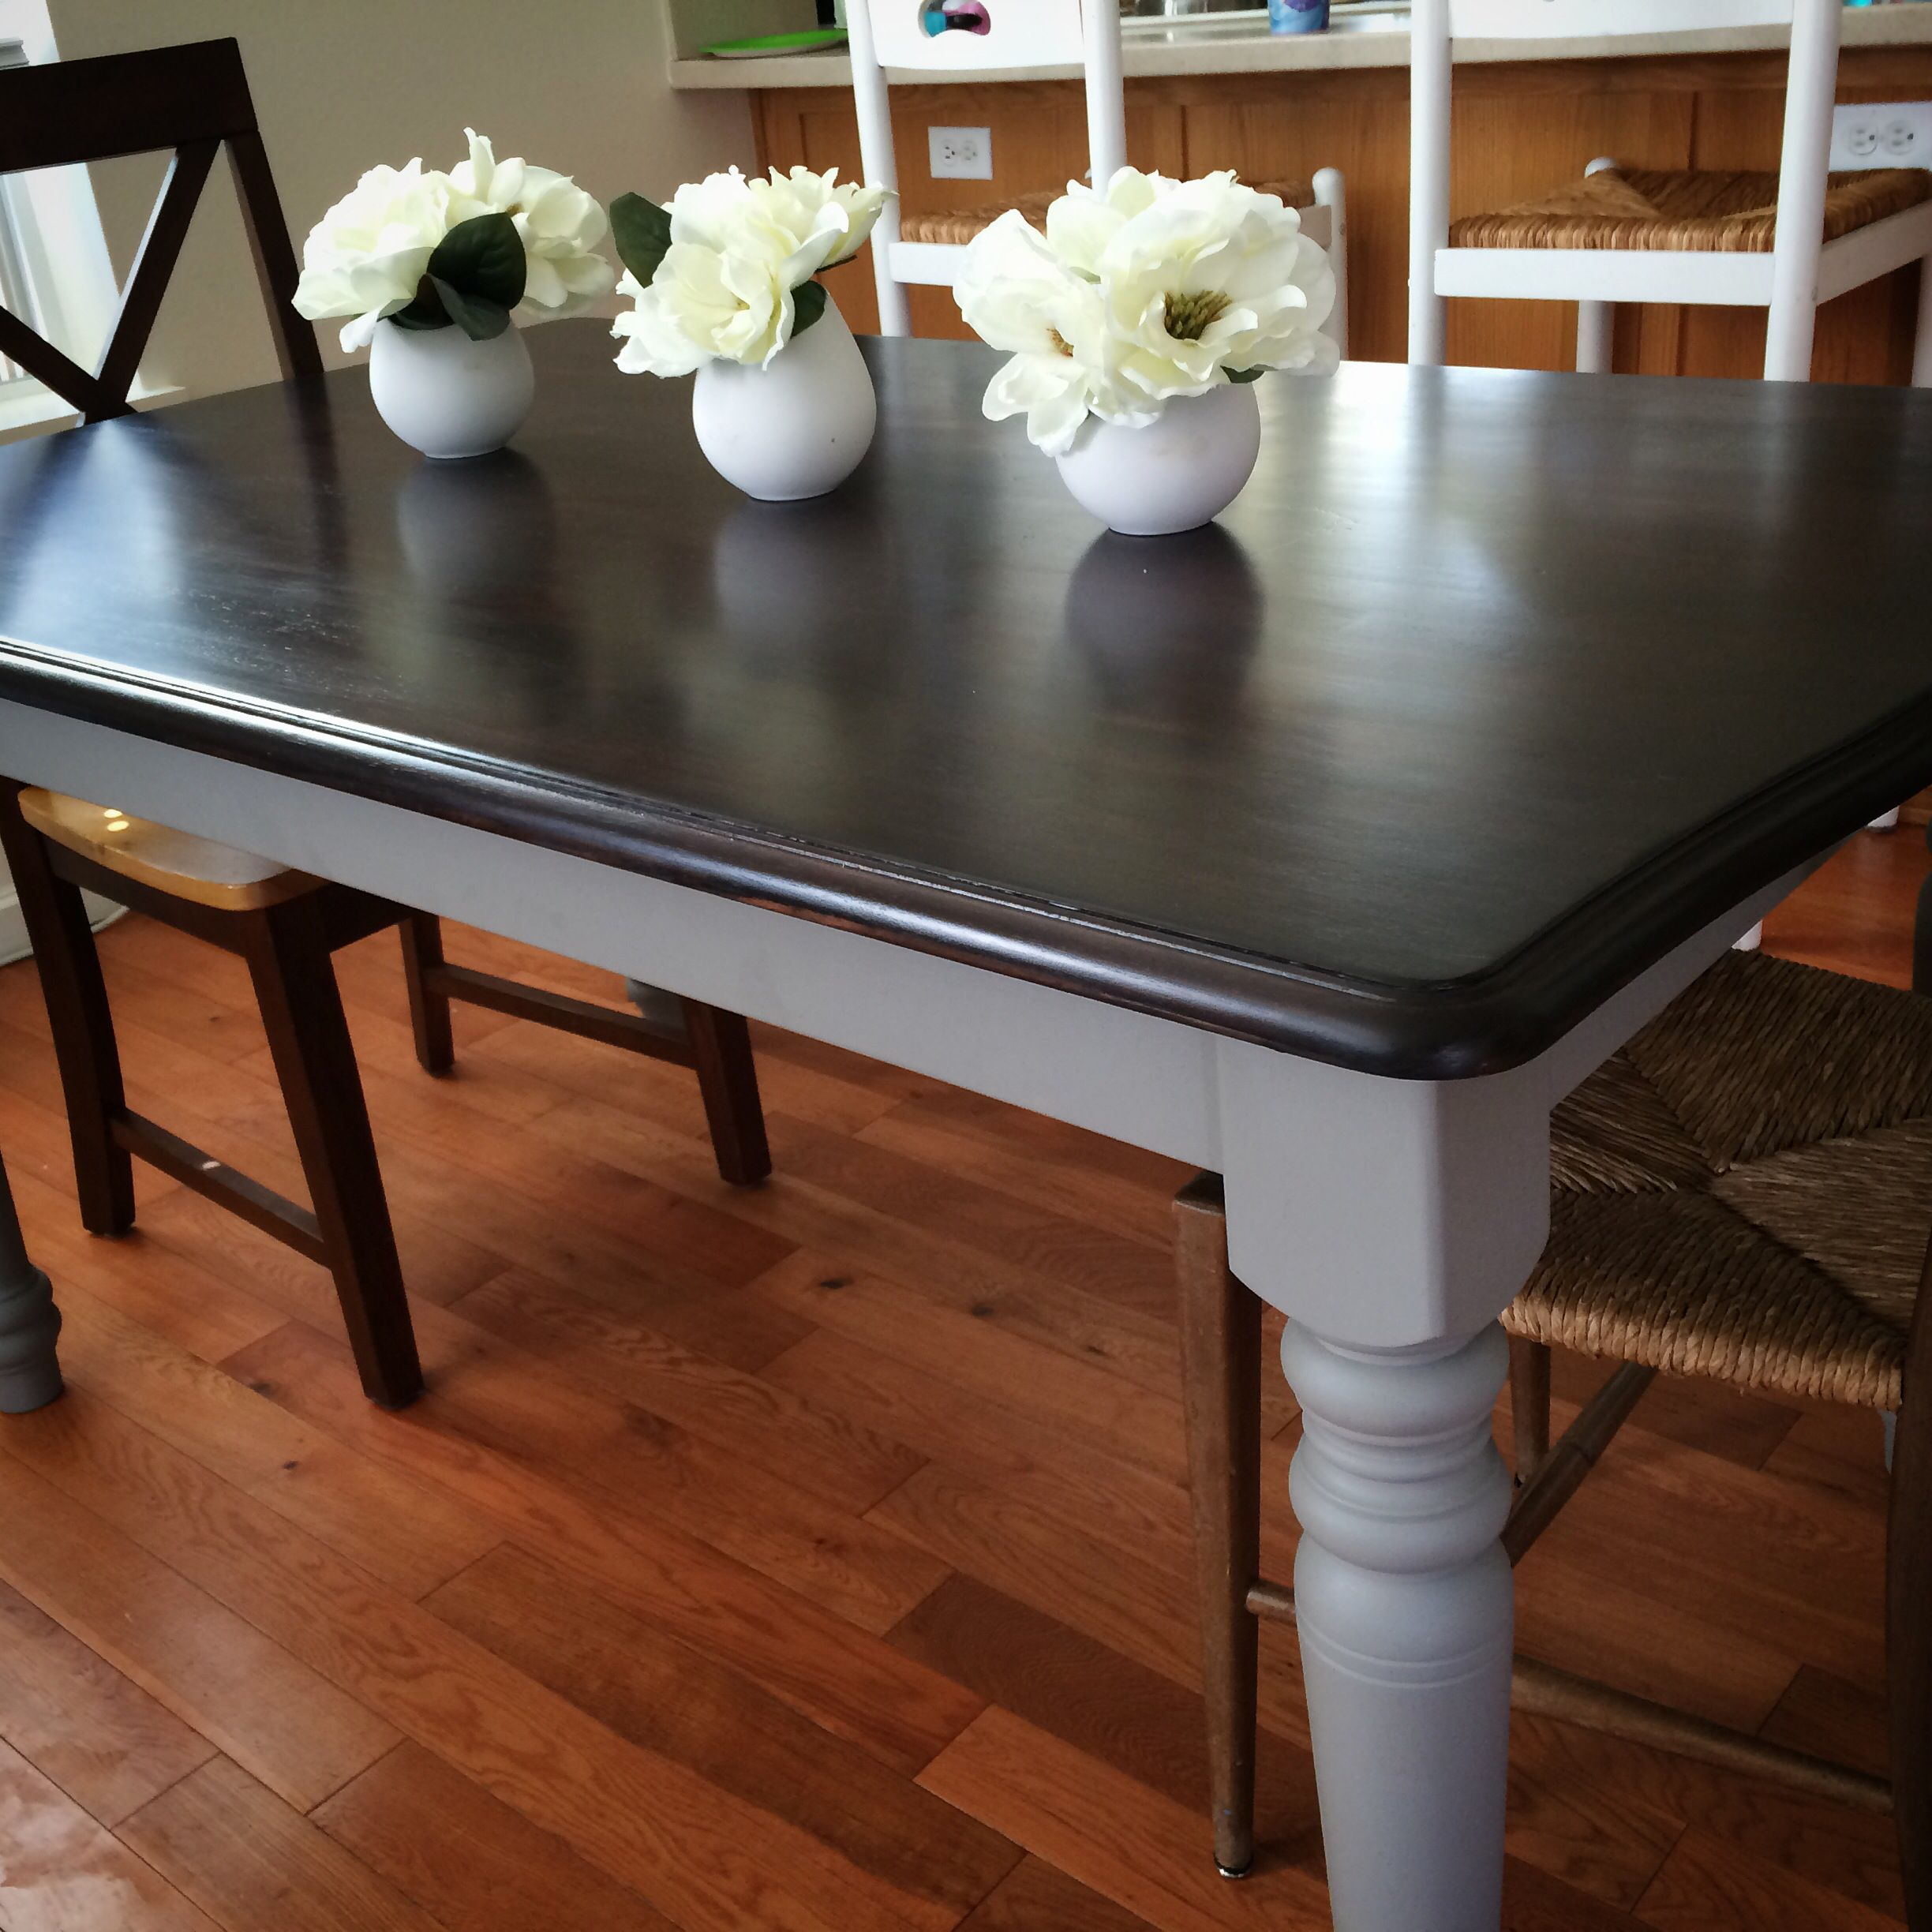 35 Best Images About Refinished Oak Tables On Pinterest: Annie Sloan Chalk Paint French Linen And Java Stain Over